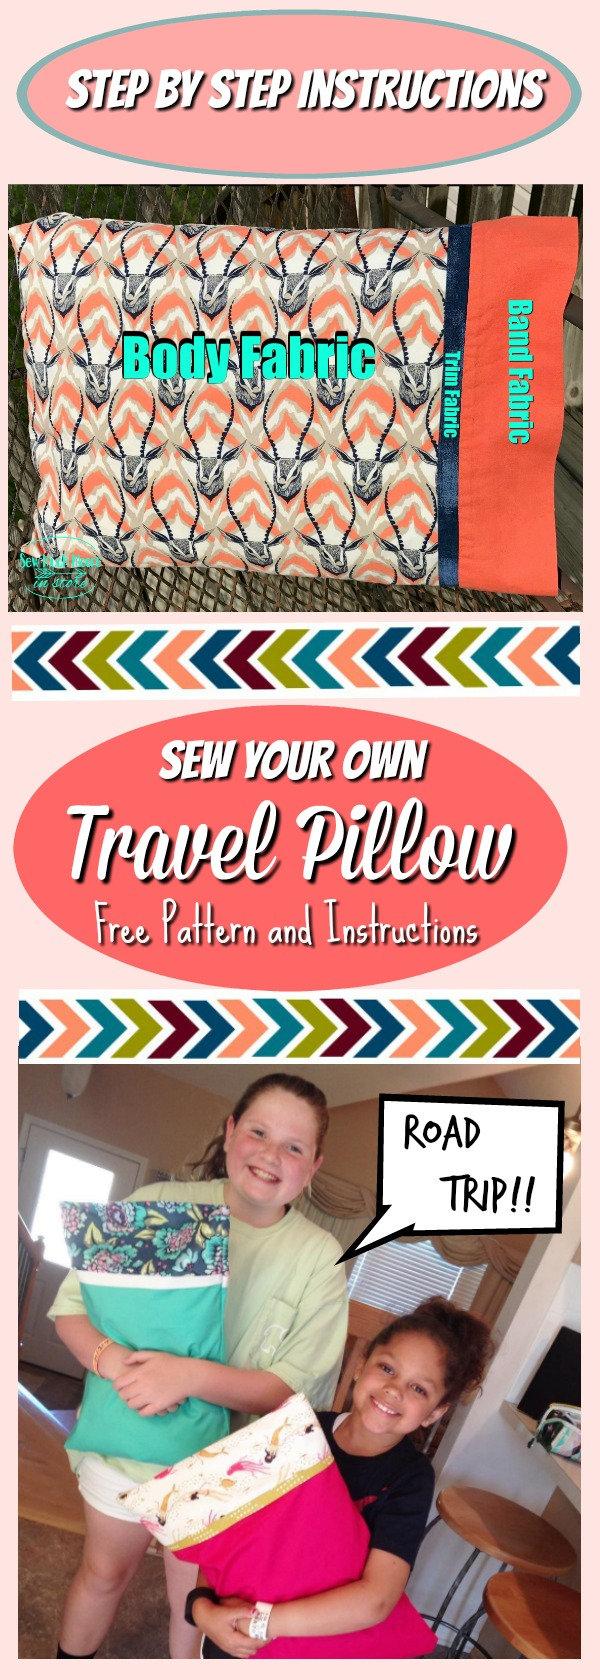 Make a Travel Sized Pillow Case! This fun and easy method is quick and simple! Perfect for the beginner! Let me show you how! #sewing #TravelPillowCase #PillowcaseTutorial #RoadTrips #FreePattern #GiftIdeas #Sew #ForKids #HowToMake #VideoTutorial #StepByStep #Easy #Simple #SpringBreak #SummerVacation #SewMuchMoore #SewMuchMooreInStore